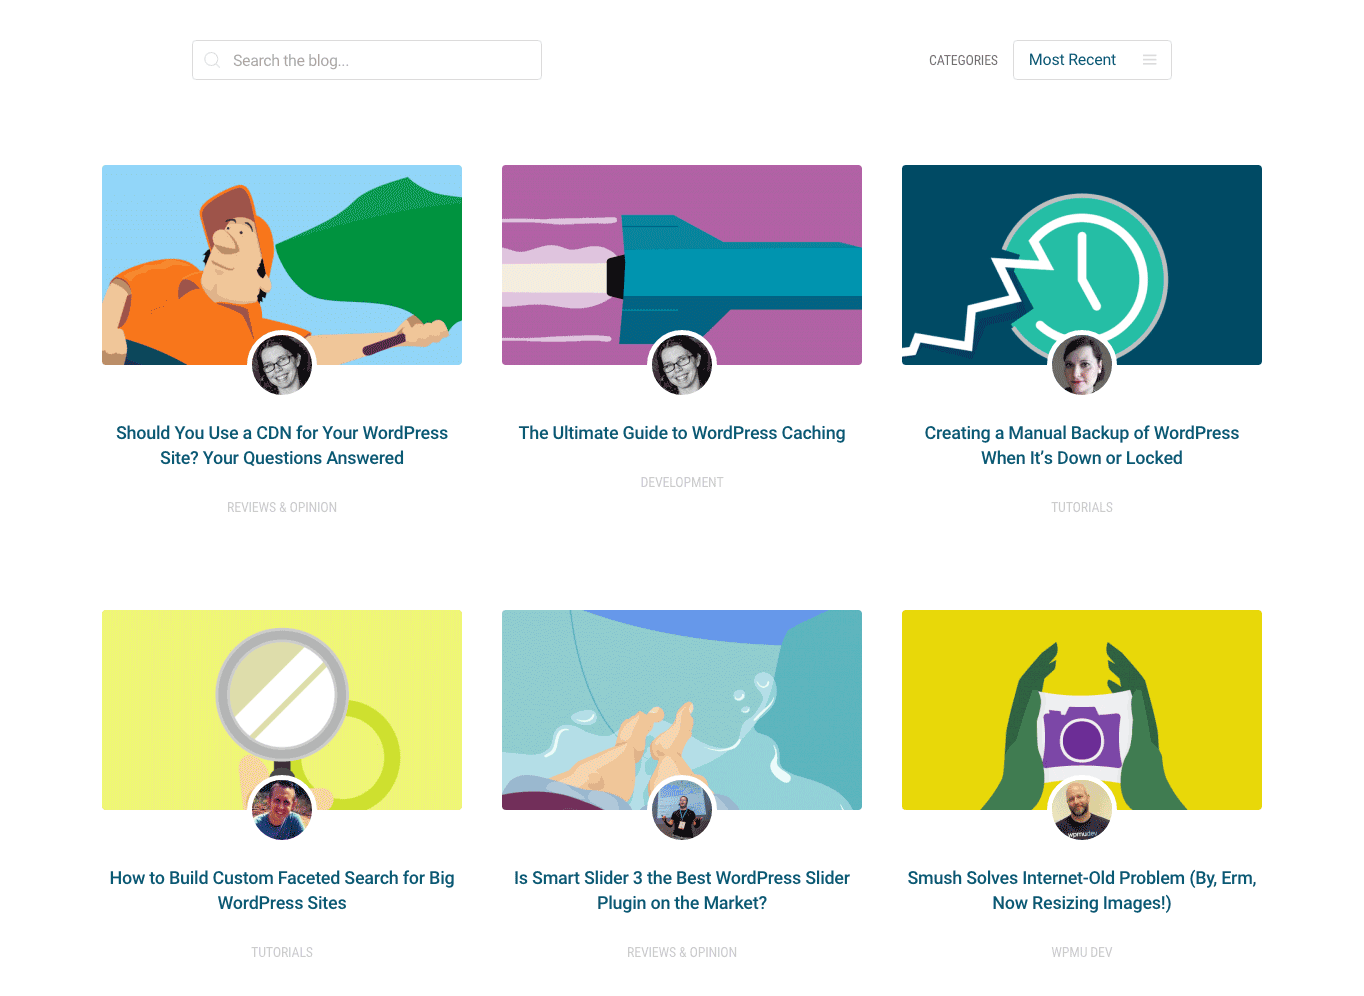 Our blog now features a grid-style homepage so you can easily browse through recent posts and categories.